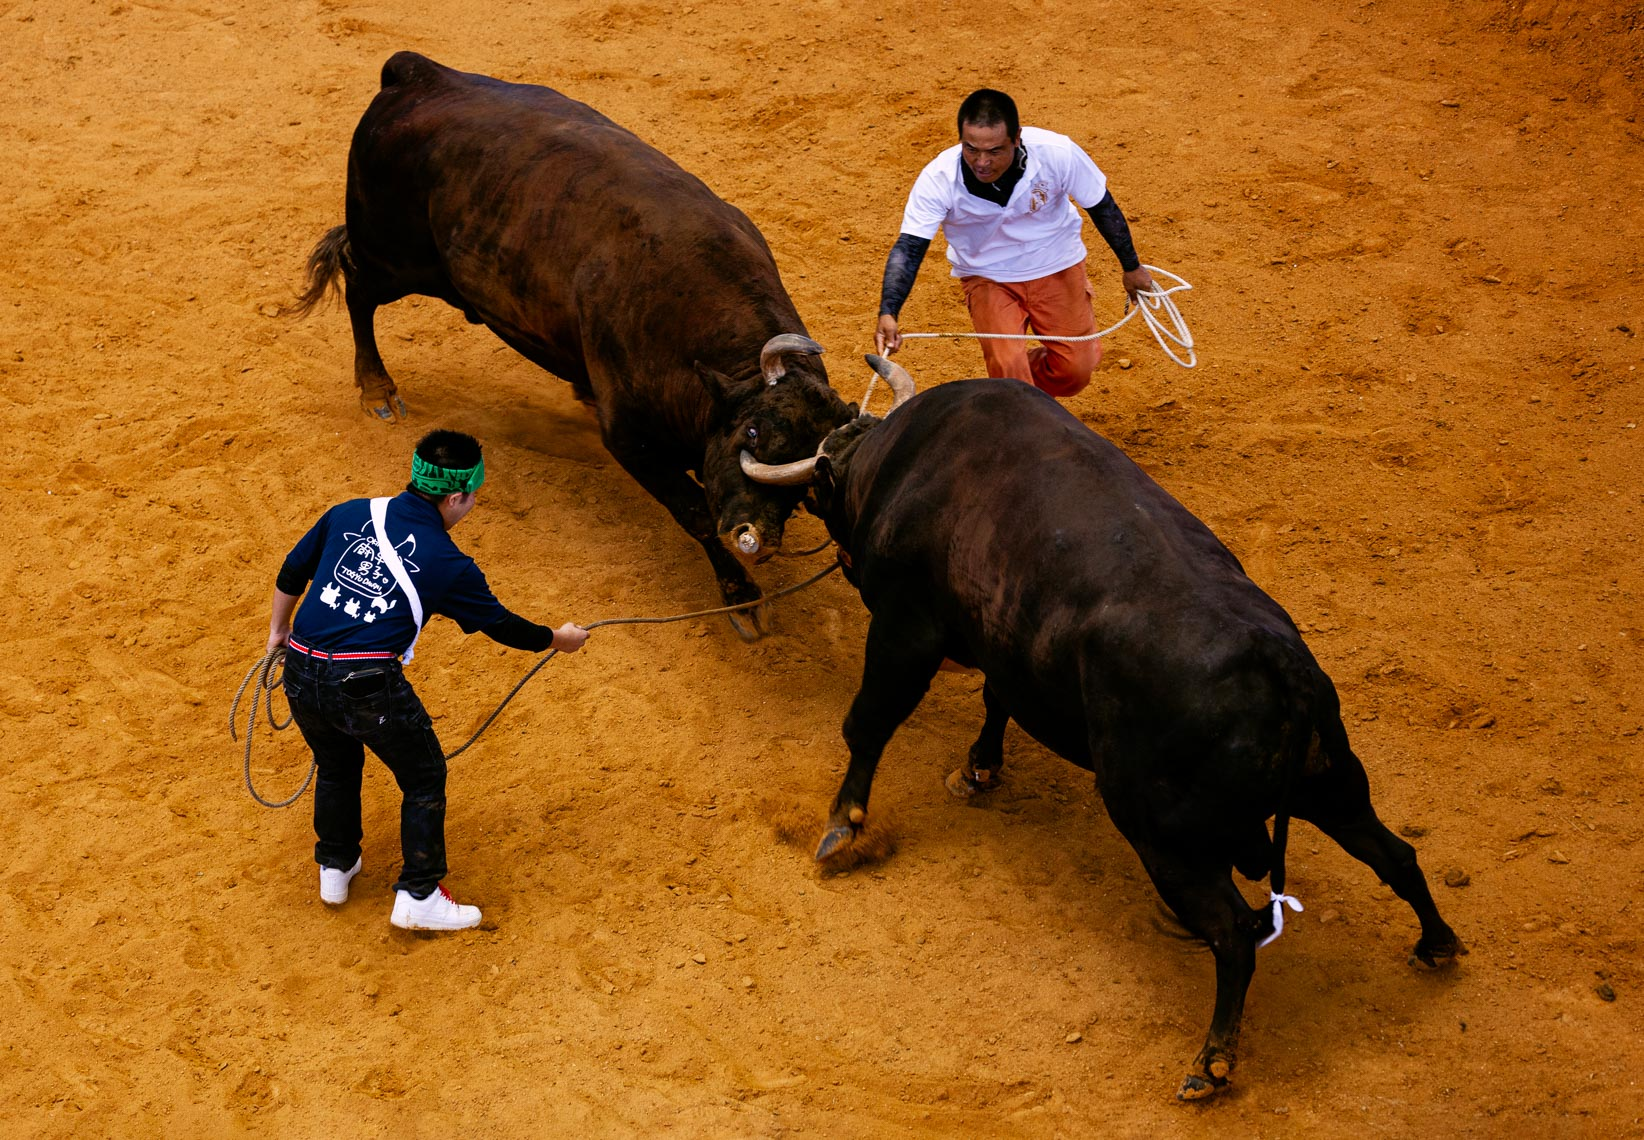 20190825_Bullfighting_587-Edit-2